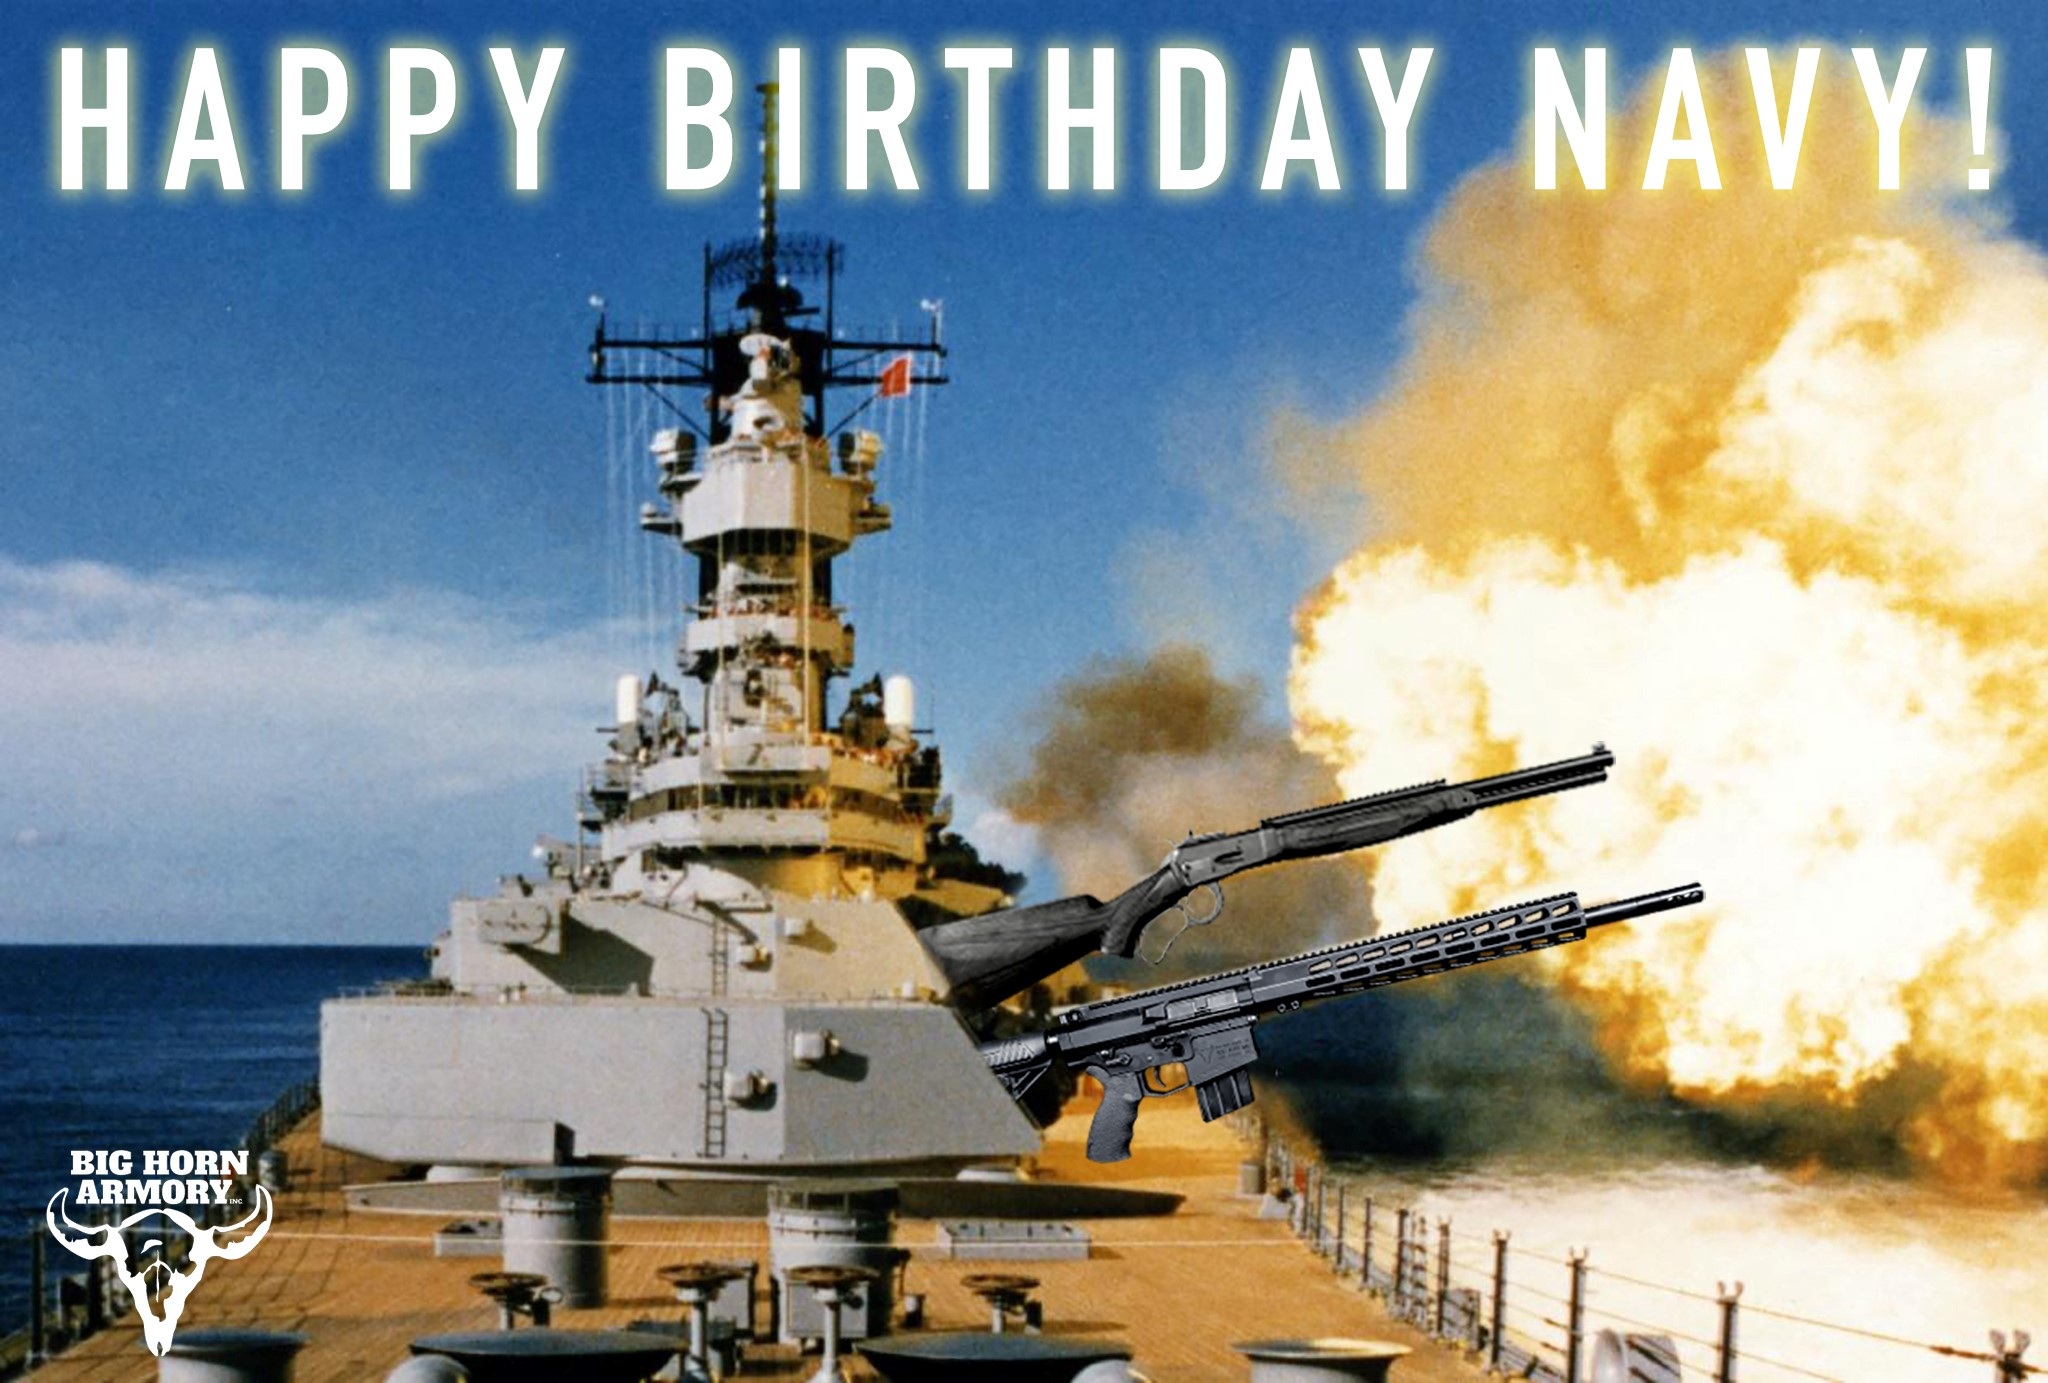 Big Horn Armory Celebrates the U.S. Navy's Birthday with Special Promotion